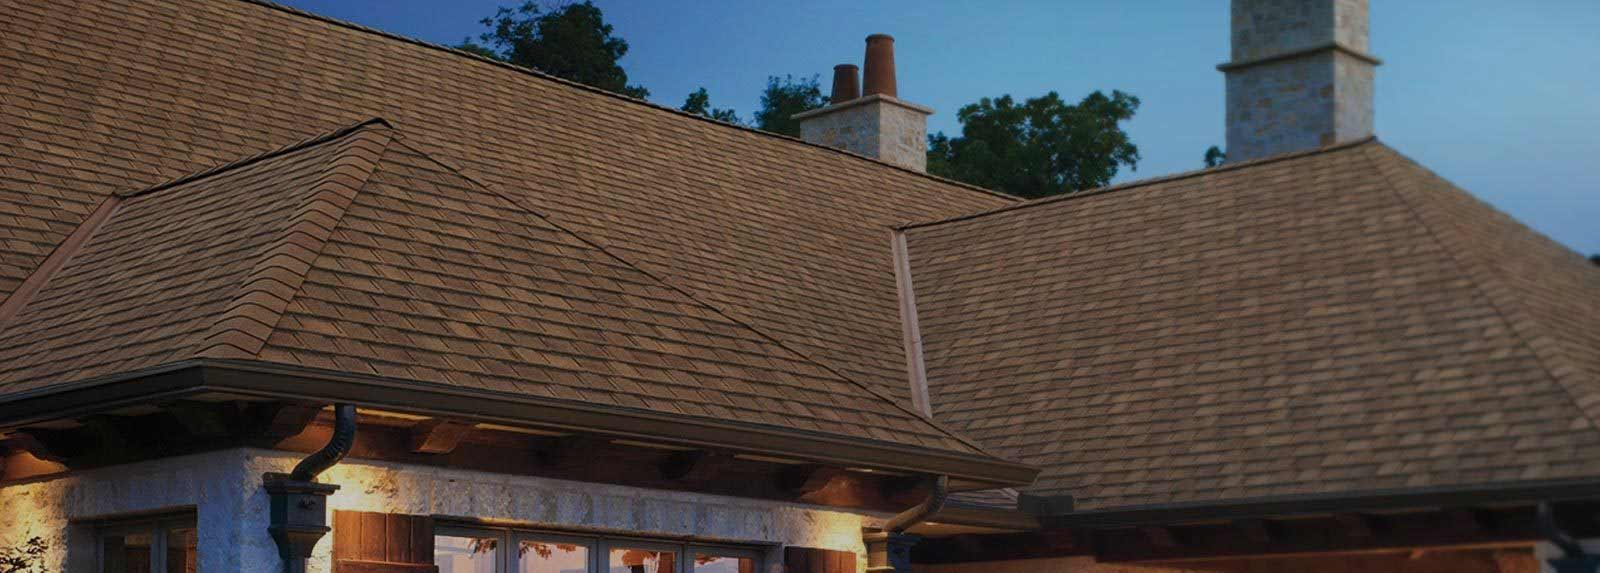 Roofing Prices in Indianapolis